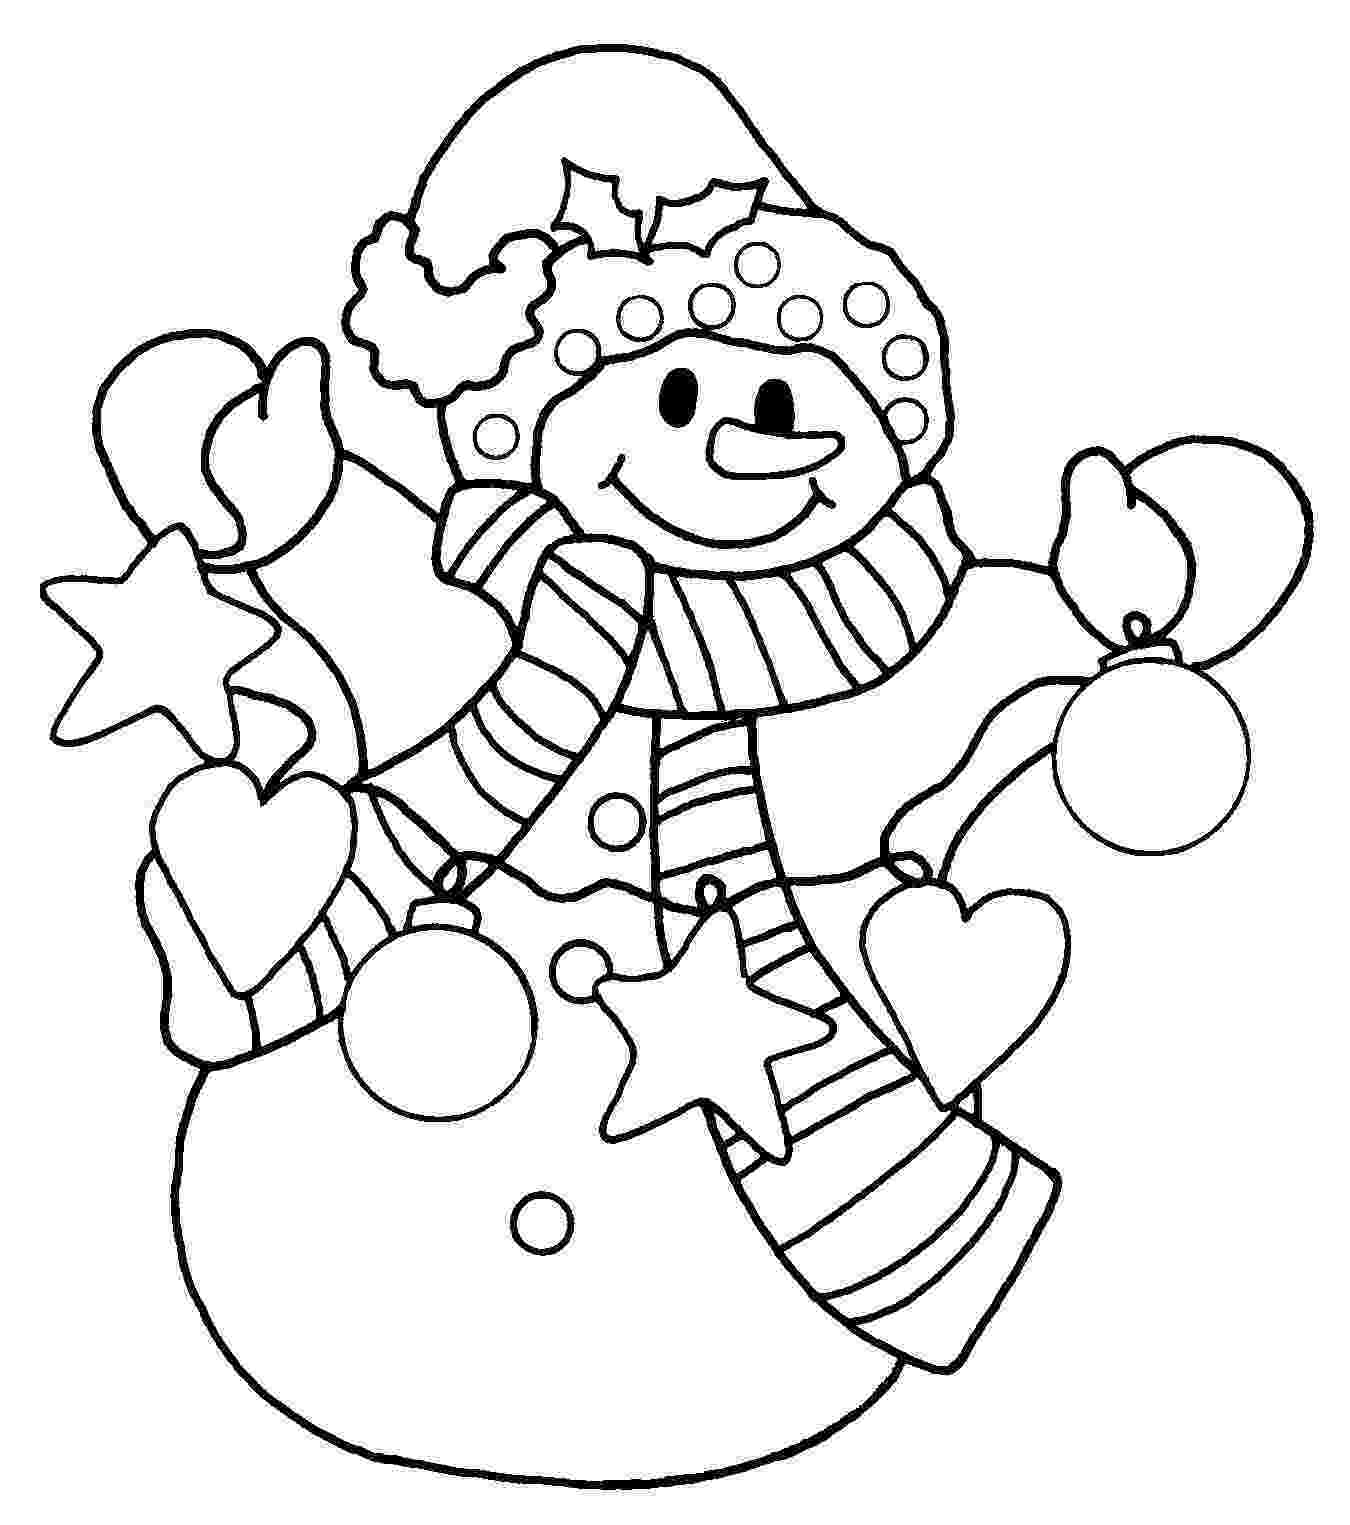 snowmancoloring sheets dz doodles digital stamps oodles of doodles news freebie snowmancoloring sheets